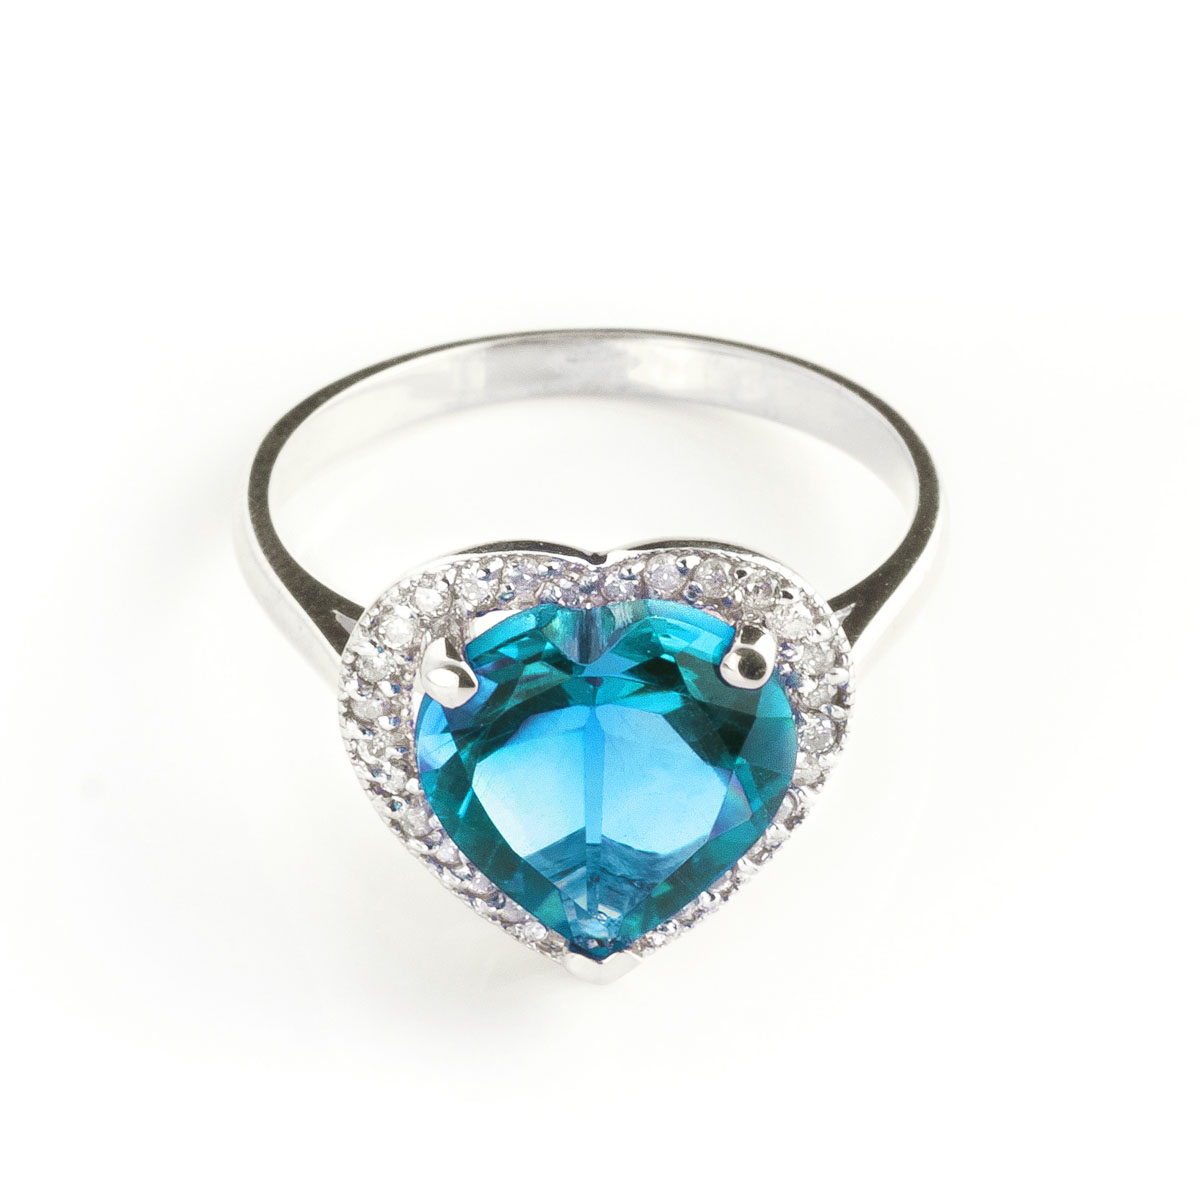 Blue Topaz Halo Ring 6.44 ctw in 18ct White Gold